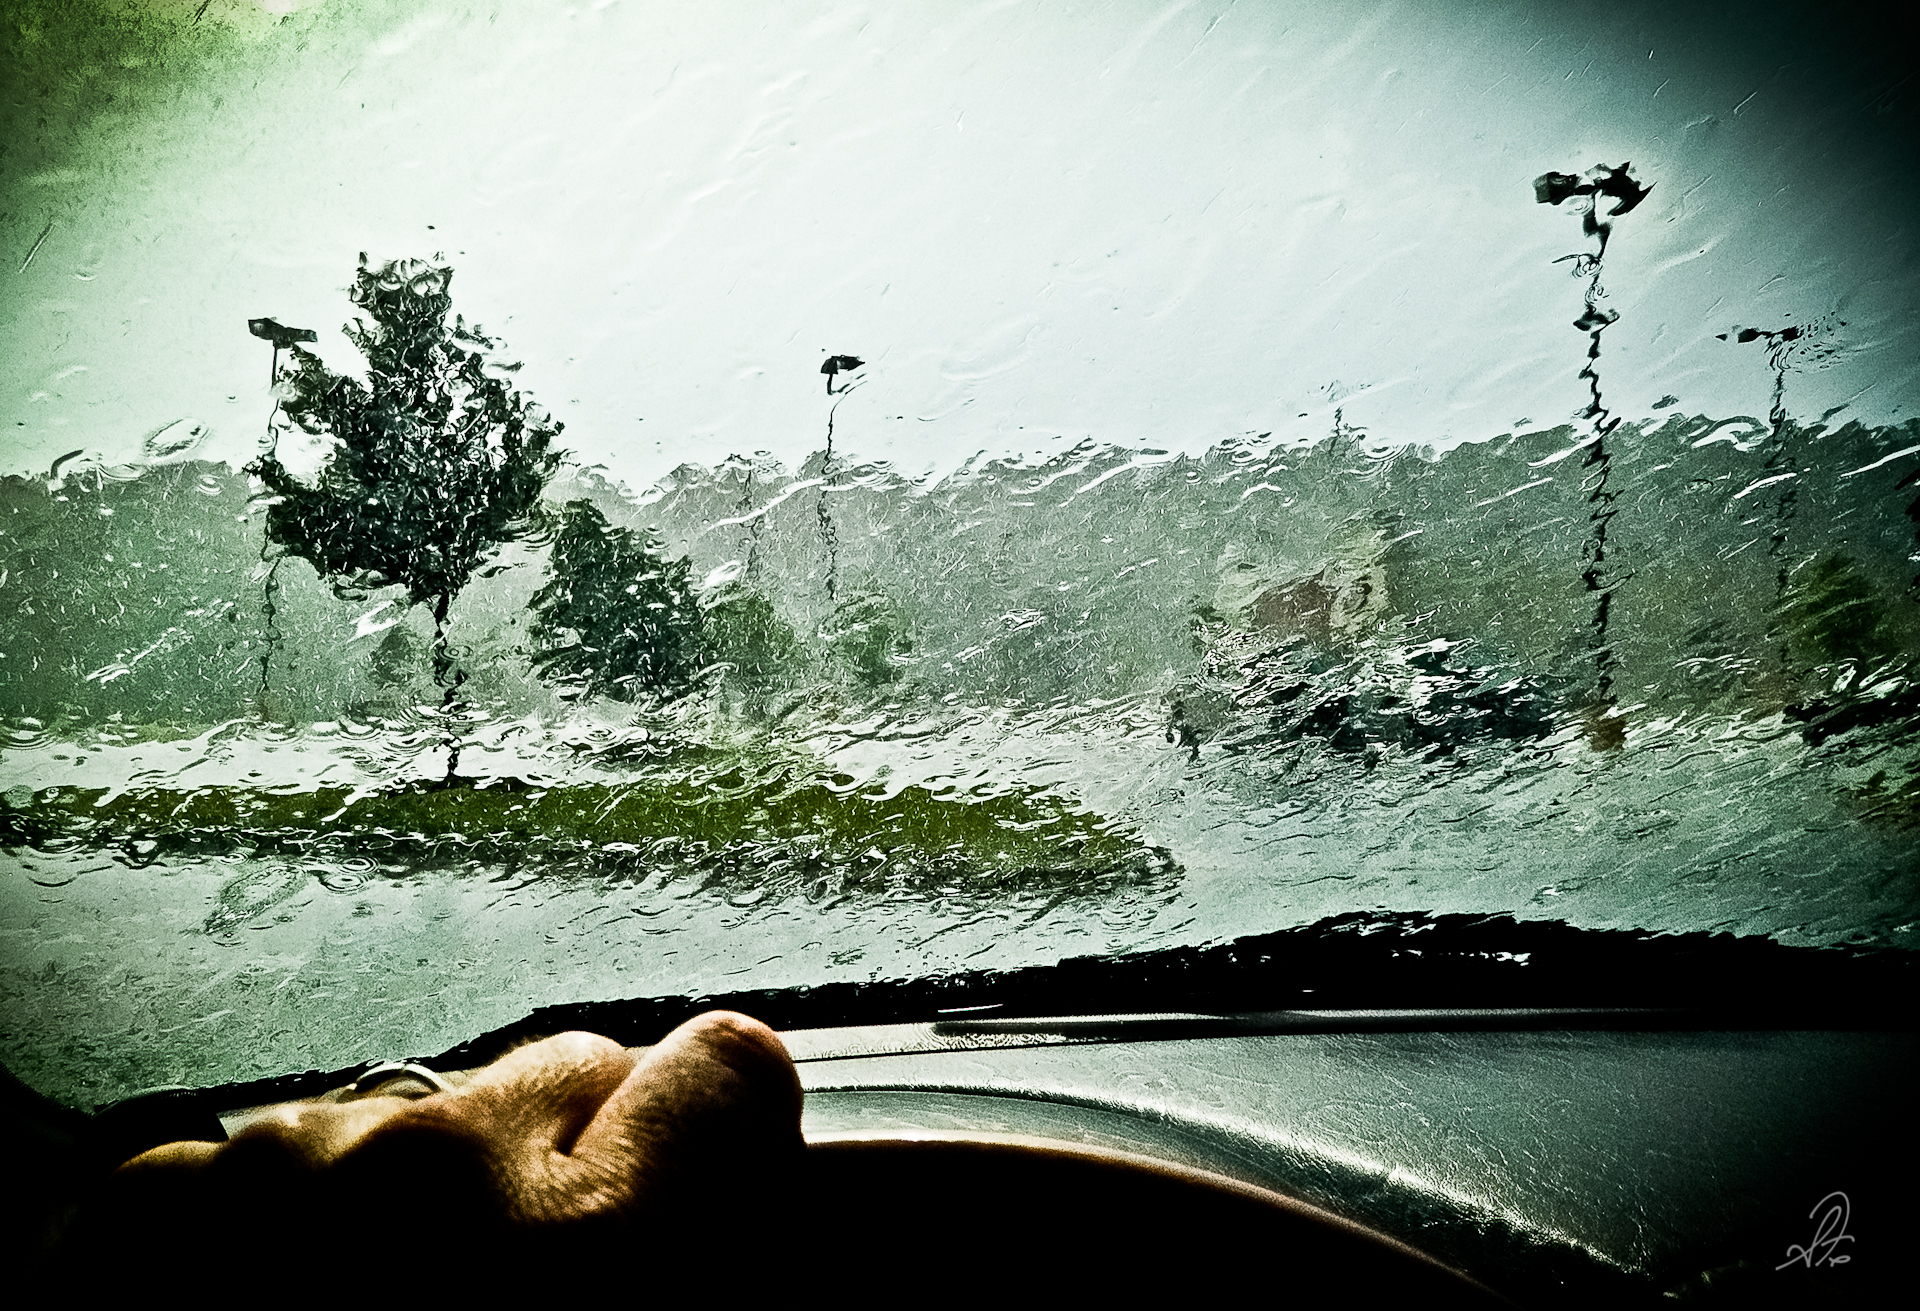 Project 365 [Day 199] Waiting for the Rain in the Parking Lot